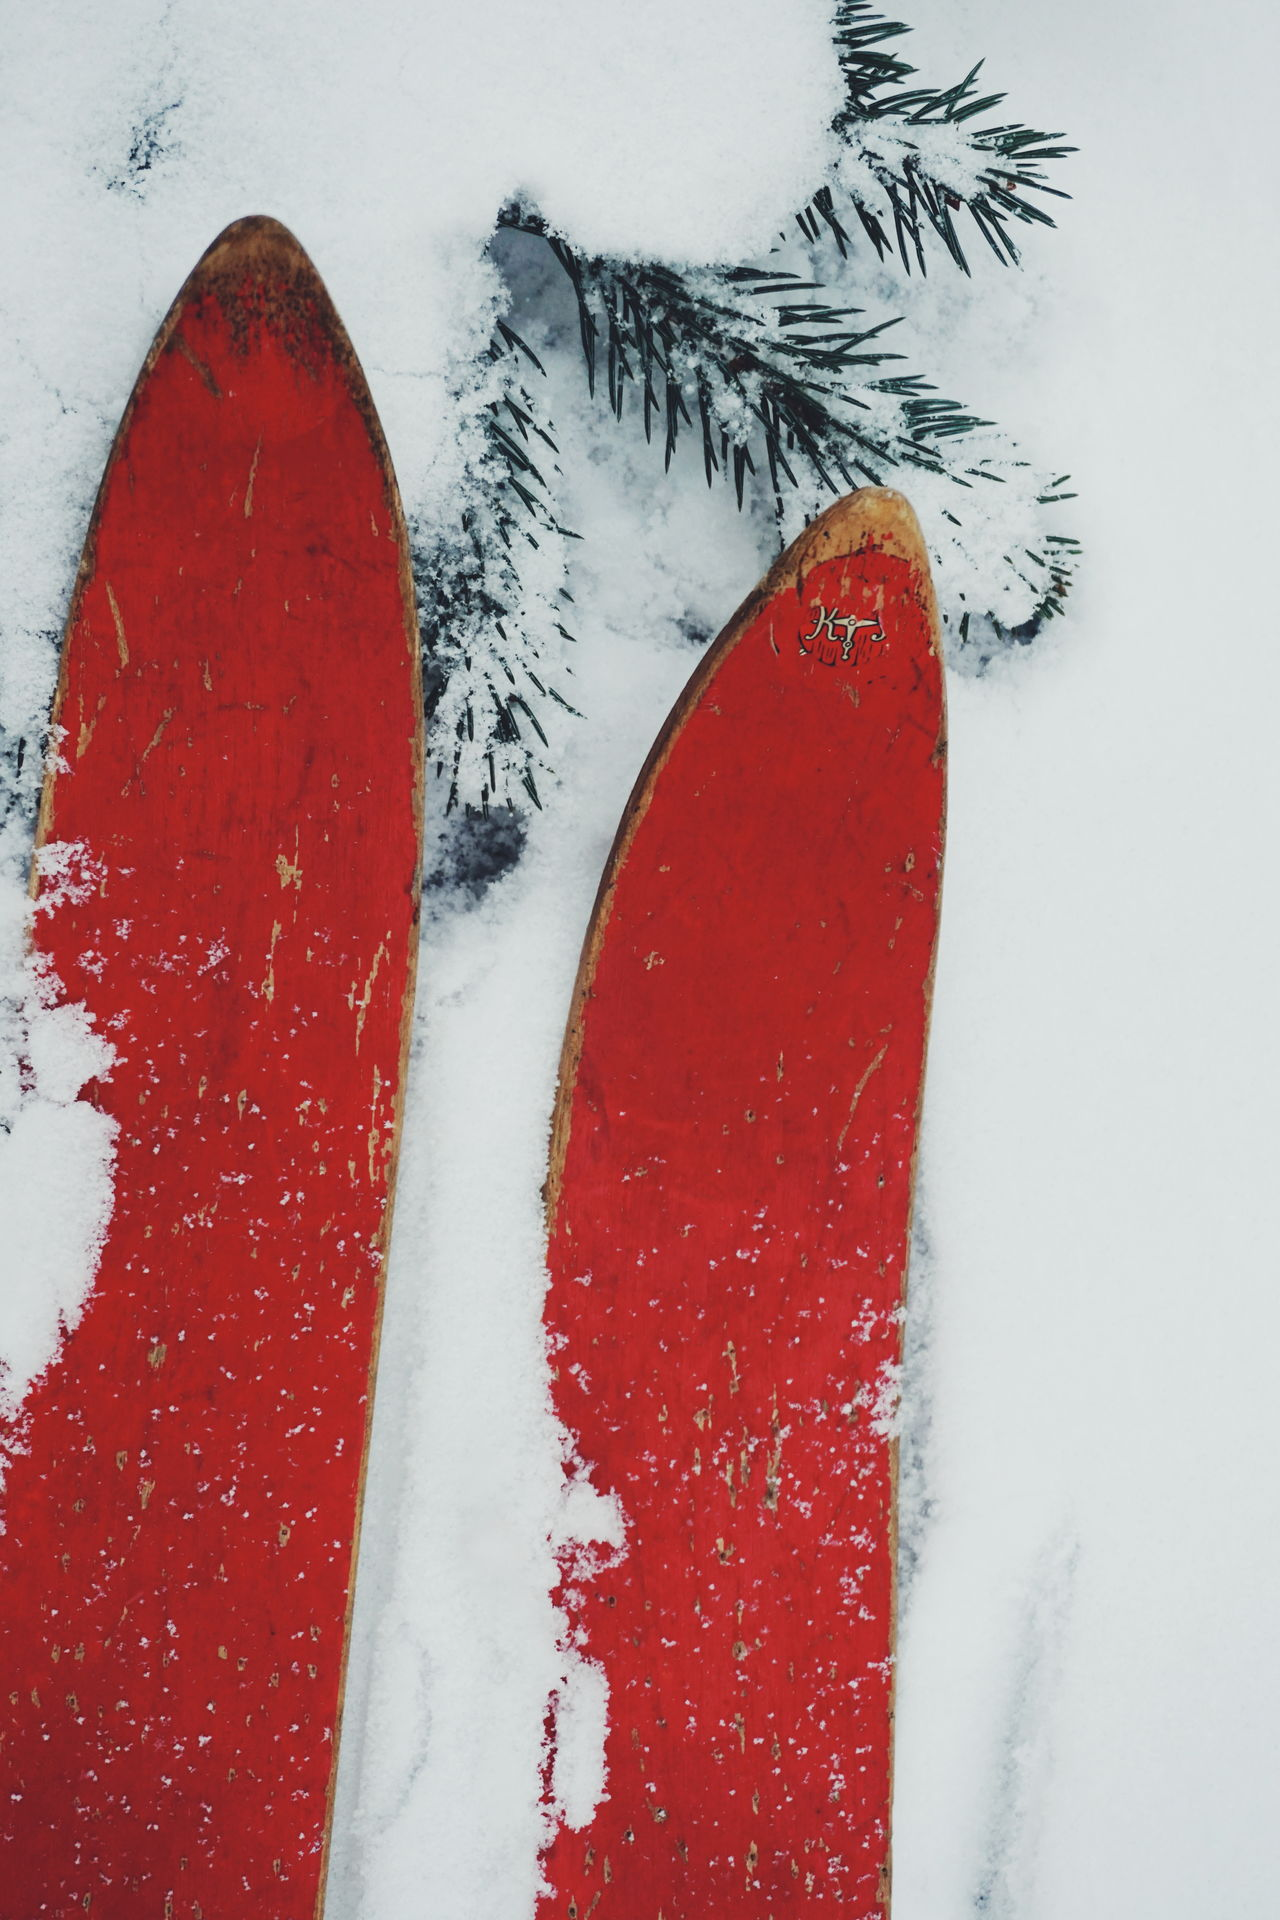 old wooden ski in the snow Red Vibrant Color Close-up Outdoors Snow Skiing Ski Winter_collection Winterscapes Wintertime Snowfall Winter Wonderland Snow Covered Cold Temperature Christmas Memories Vintage Wooden Ski Winter White Background No People Red Childhood Old Ski Holiday - Event The Great Outdoors - 2017 EyeEm Awards